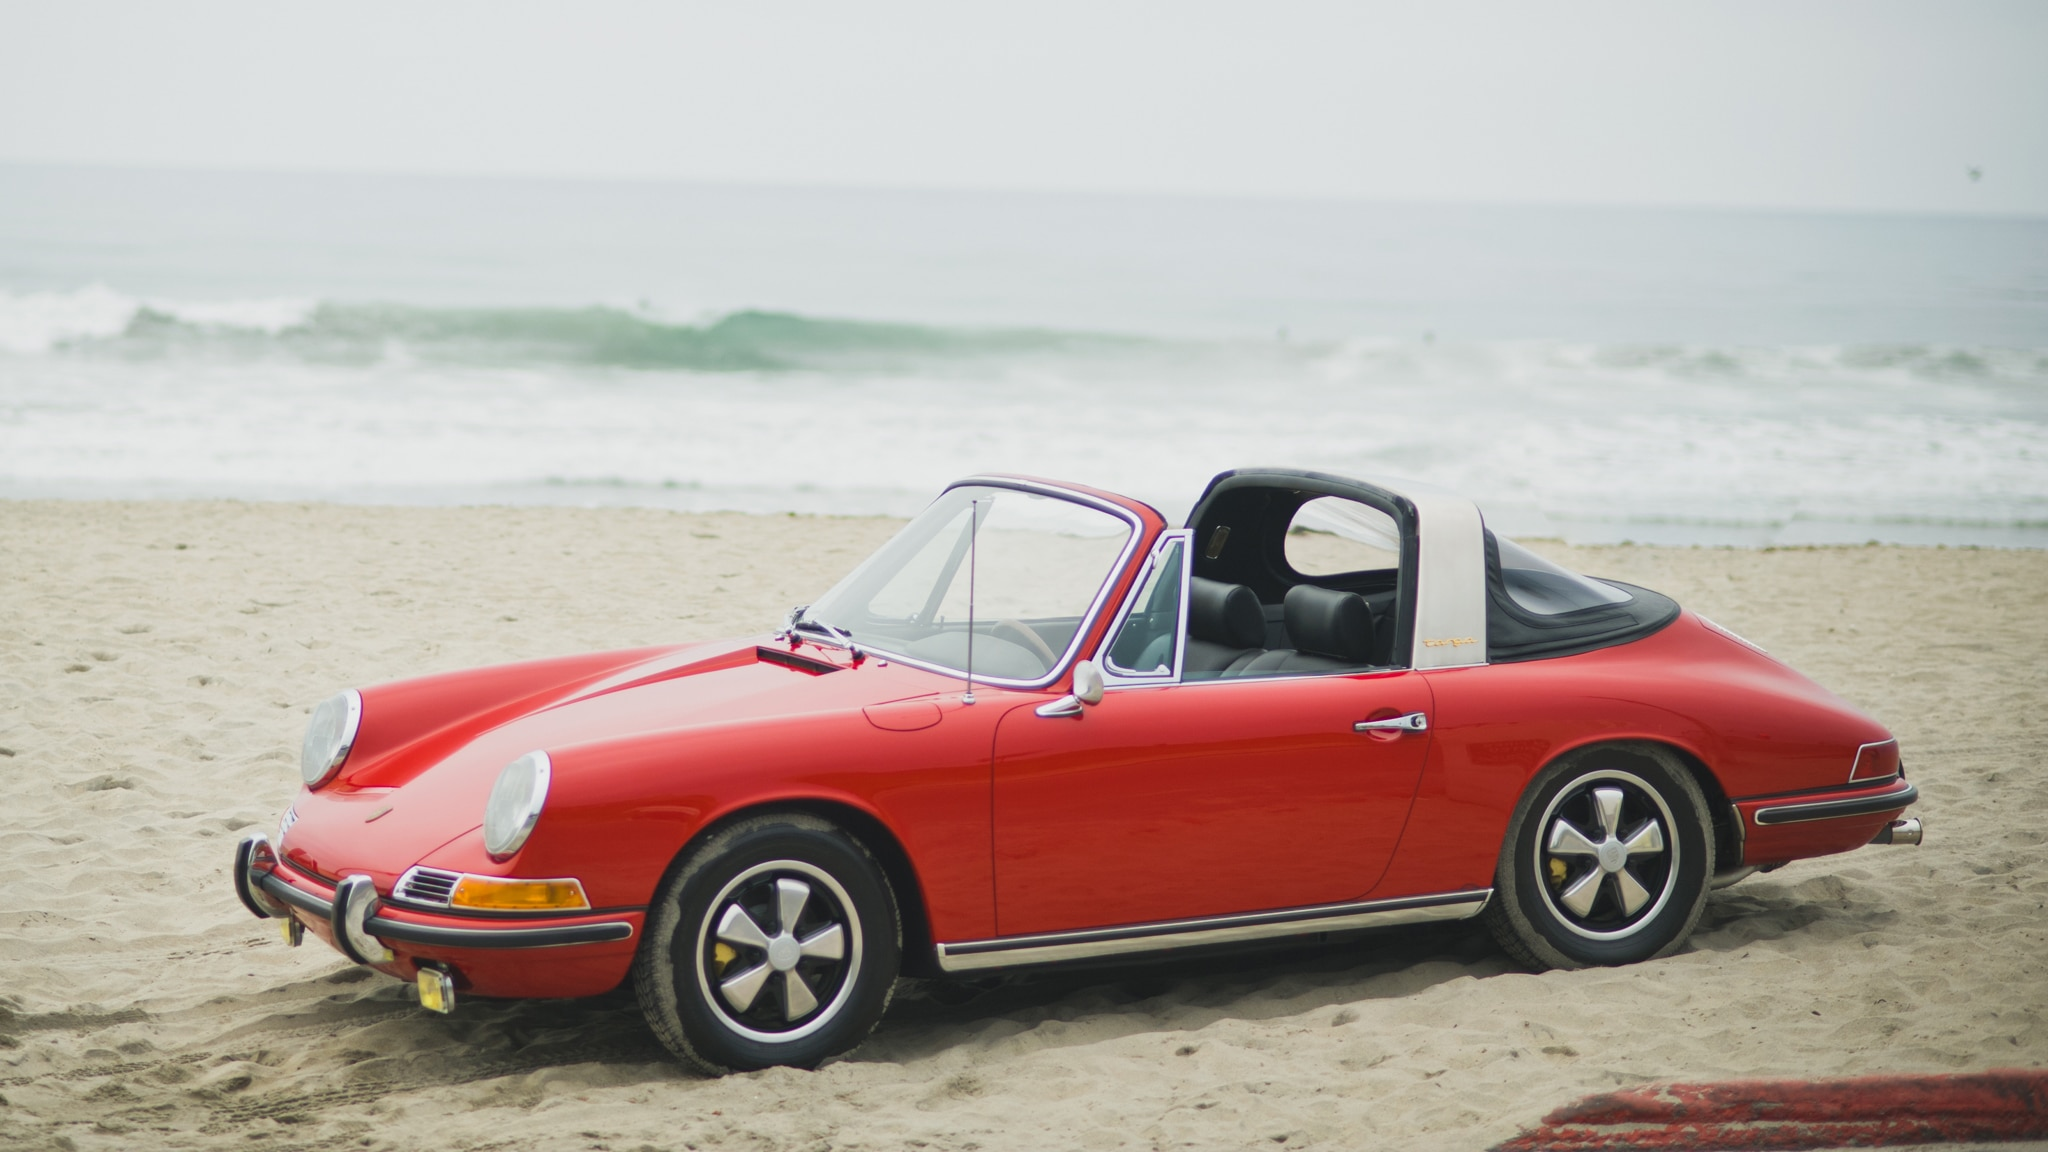 Market Watch What To Pay For Classic Porsche 911 Targa Models